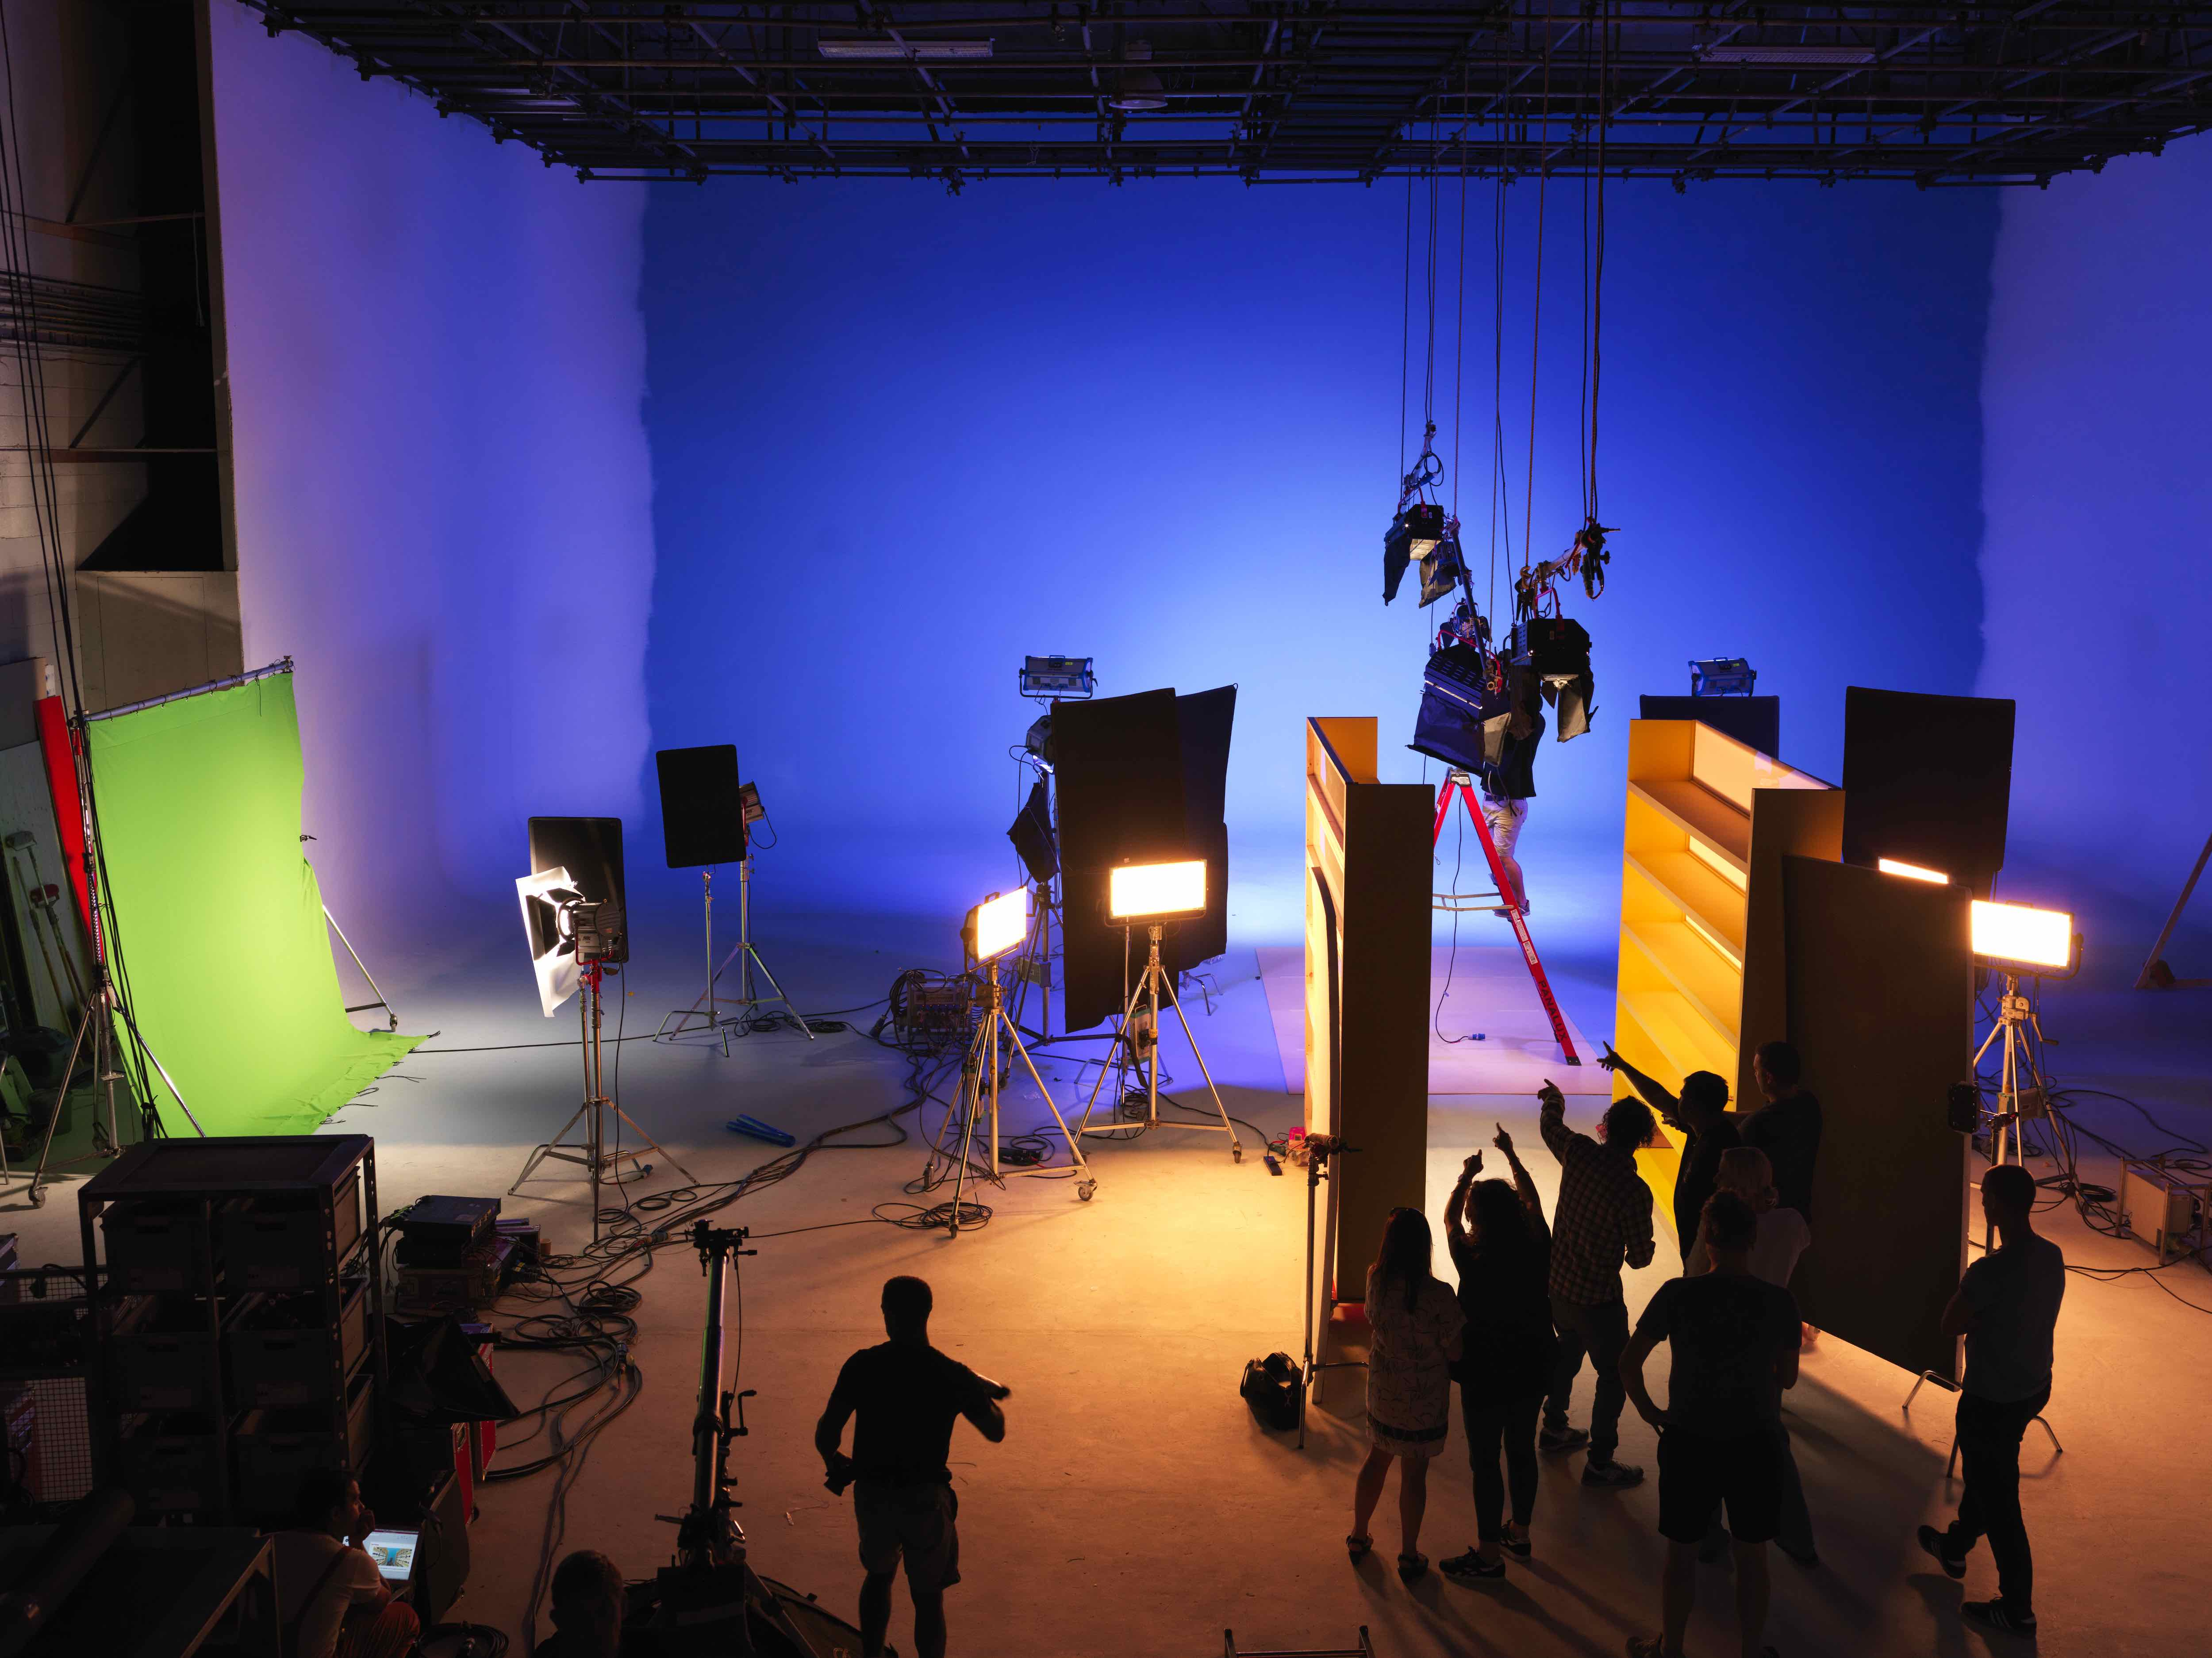 Busy film studio with different coloured lights